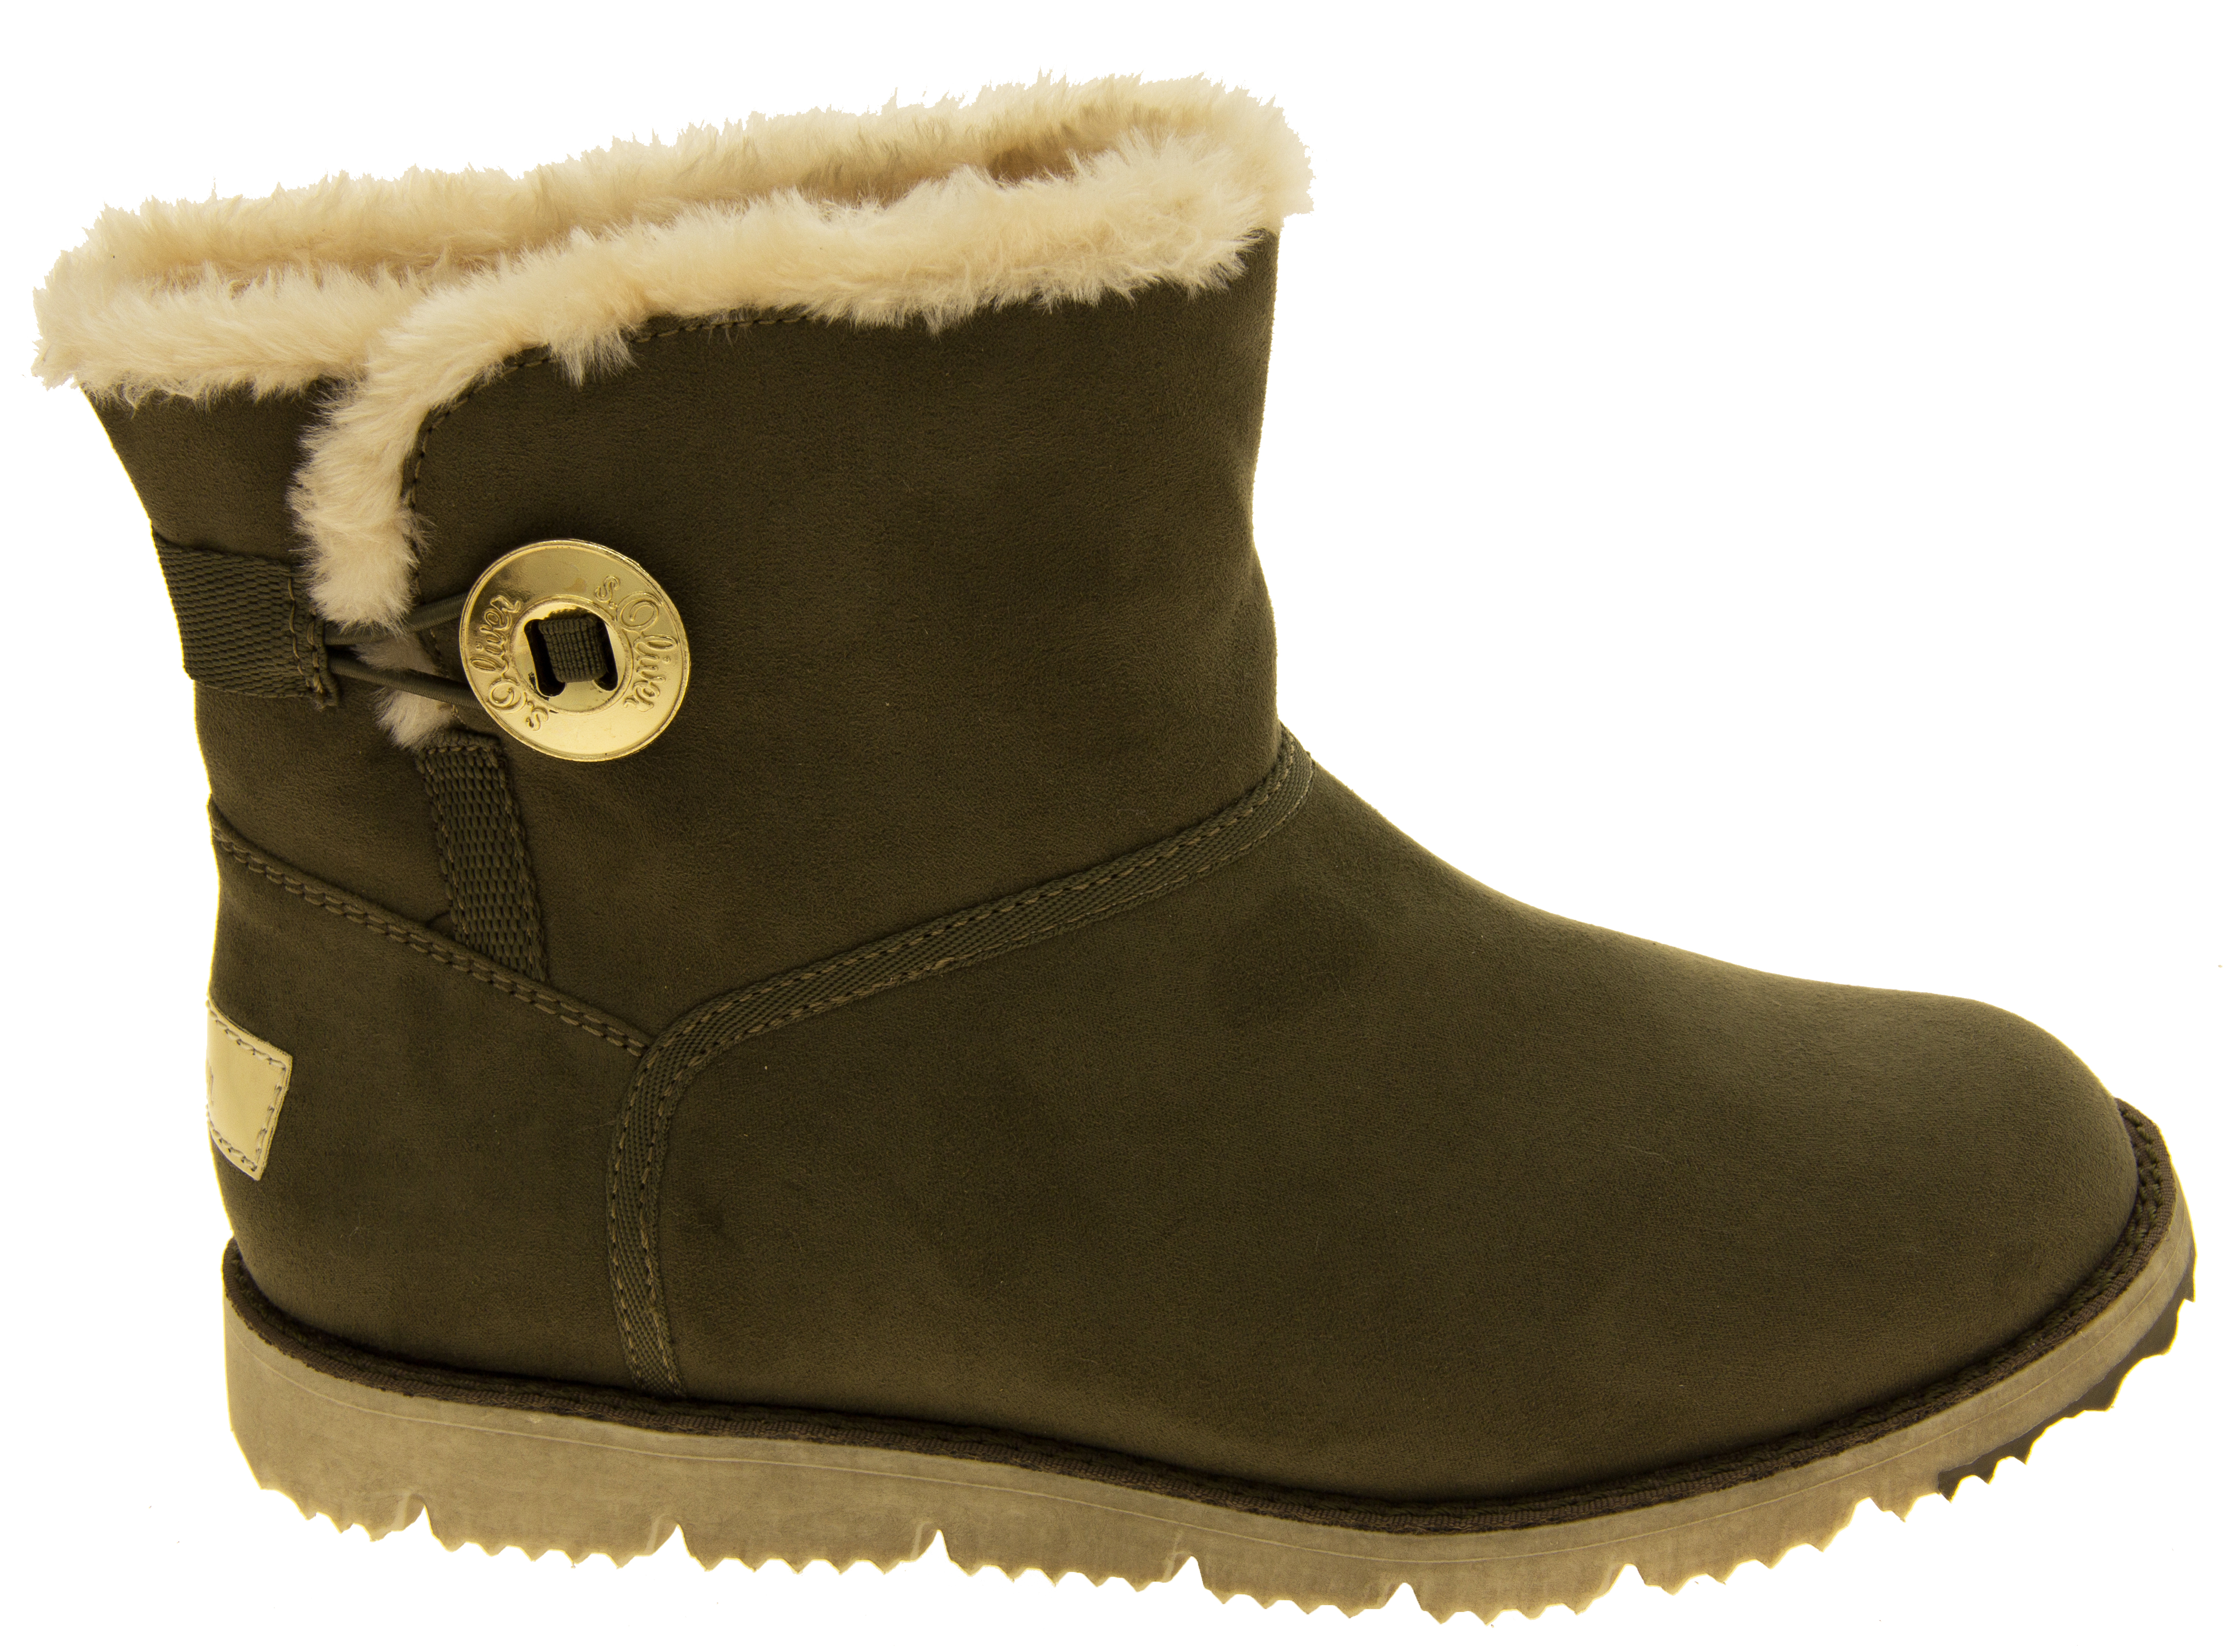 100e02cda89394 Sentinel Womens S.Oliver Fur Lined Booties Ladies Comfy Winter Ankle Boots  Size 6